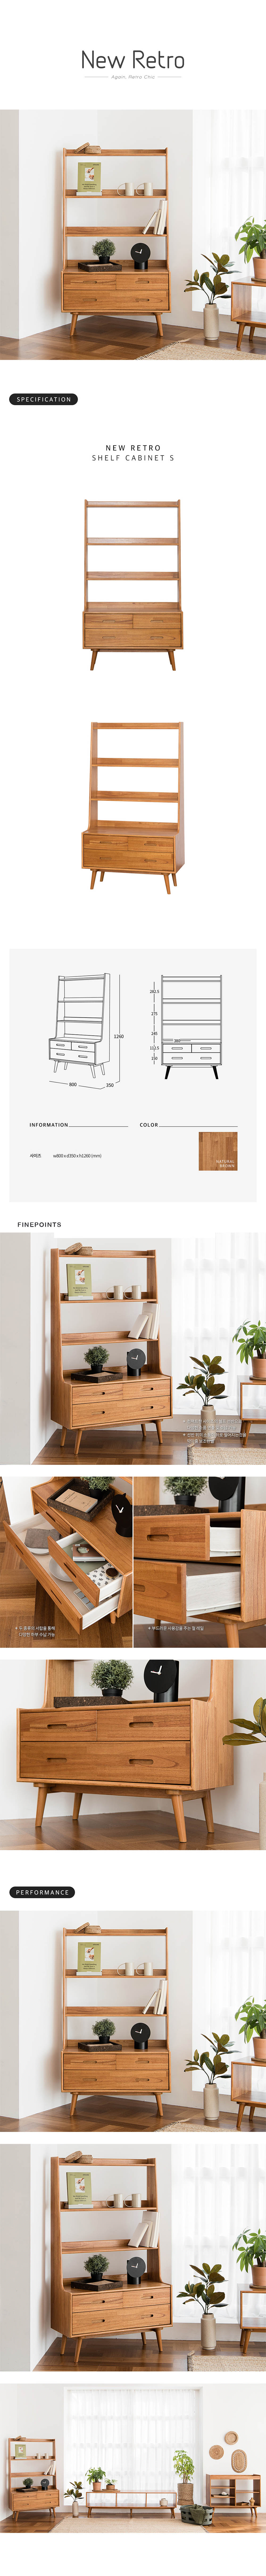 New_Retro_Compact_Entryway_Shelf_Cabinet_specs_by_born_in_colour